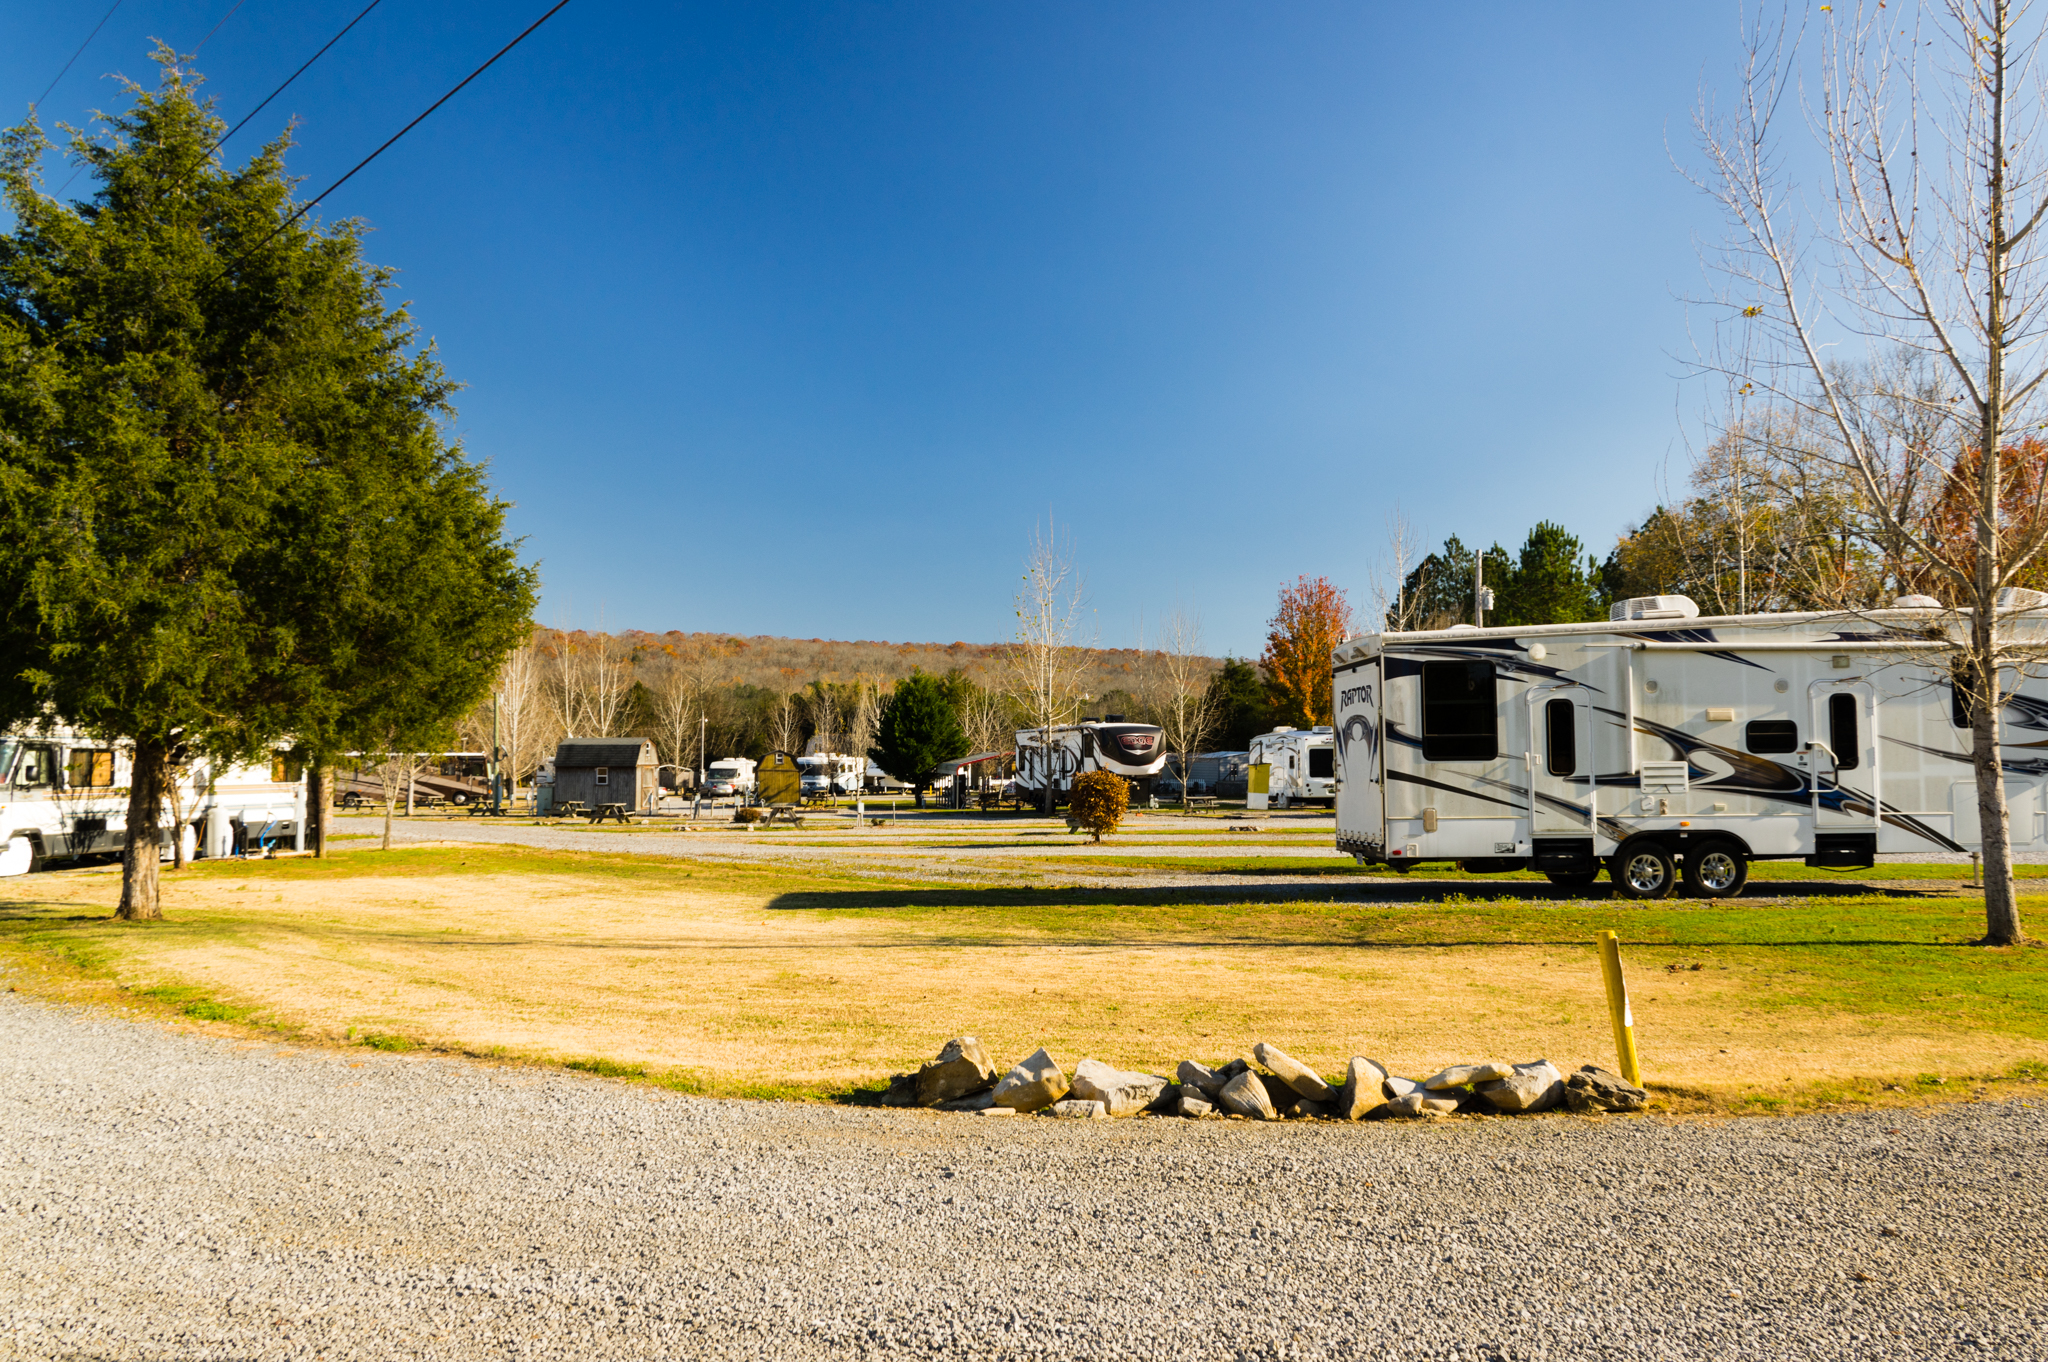 This is a photo of the RV park at Parnell Creek